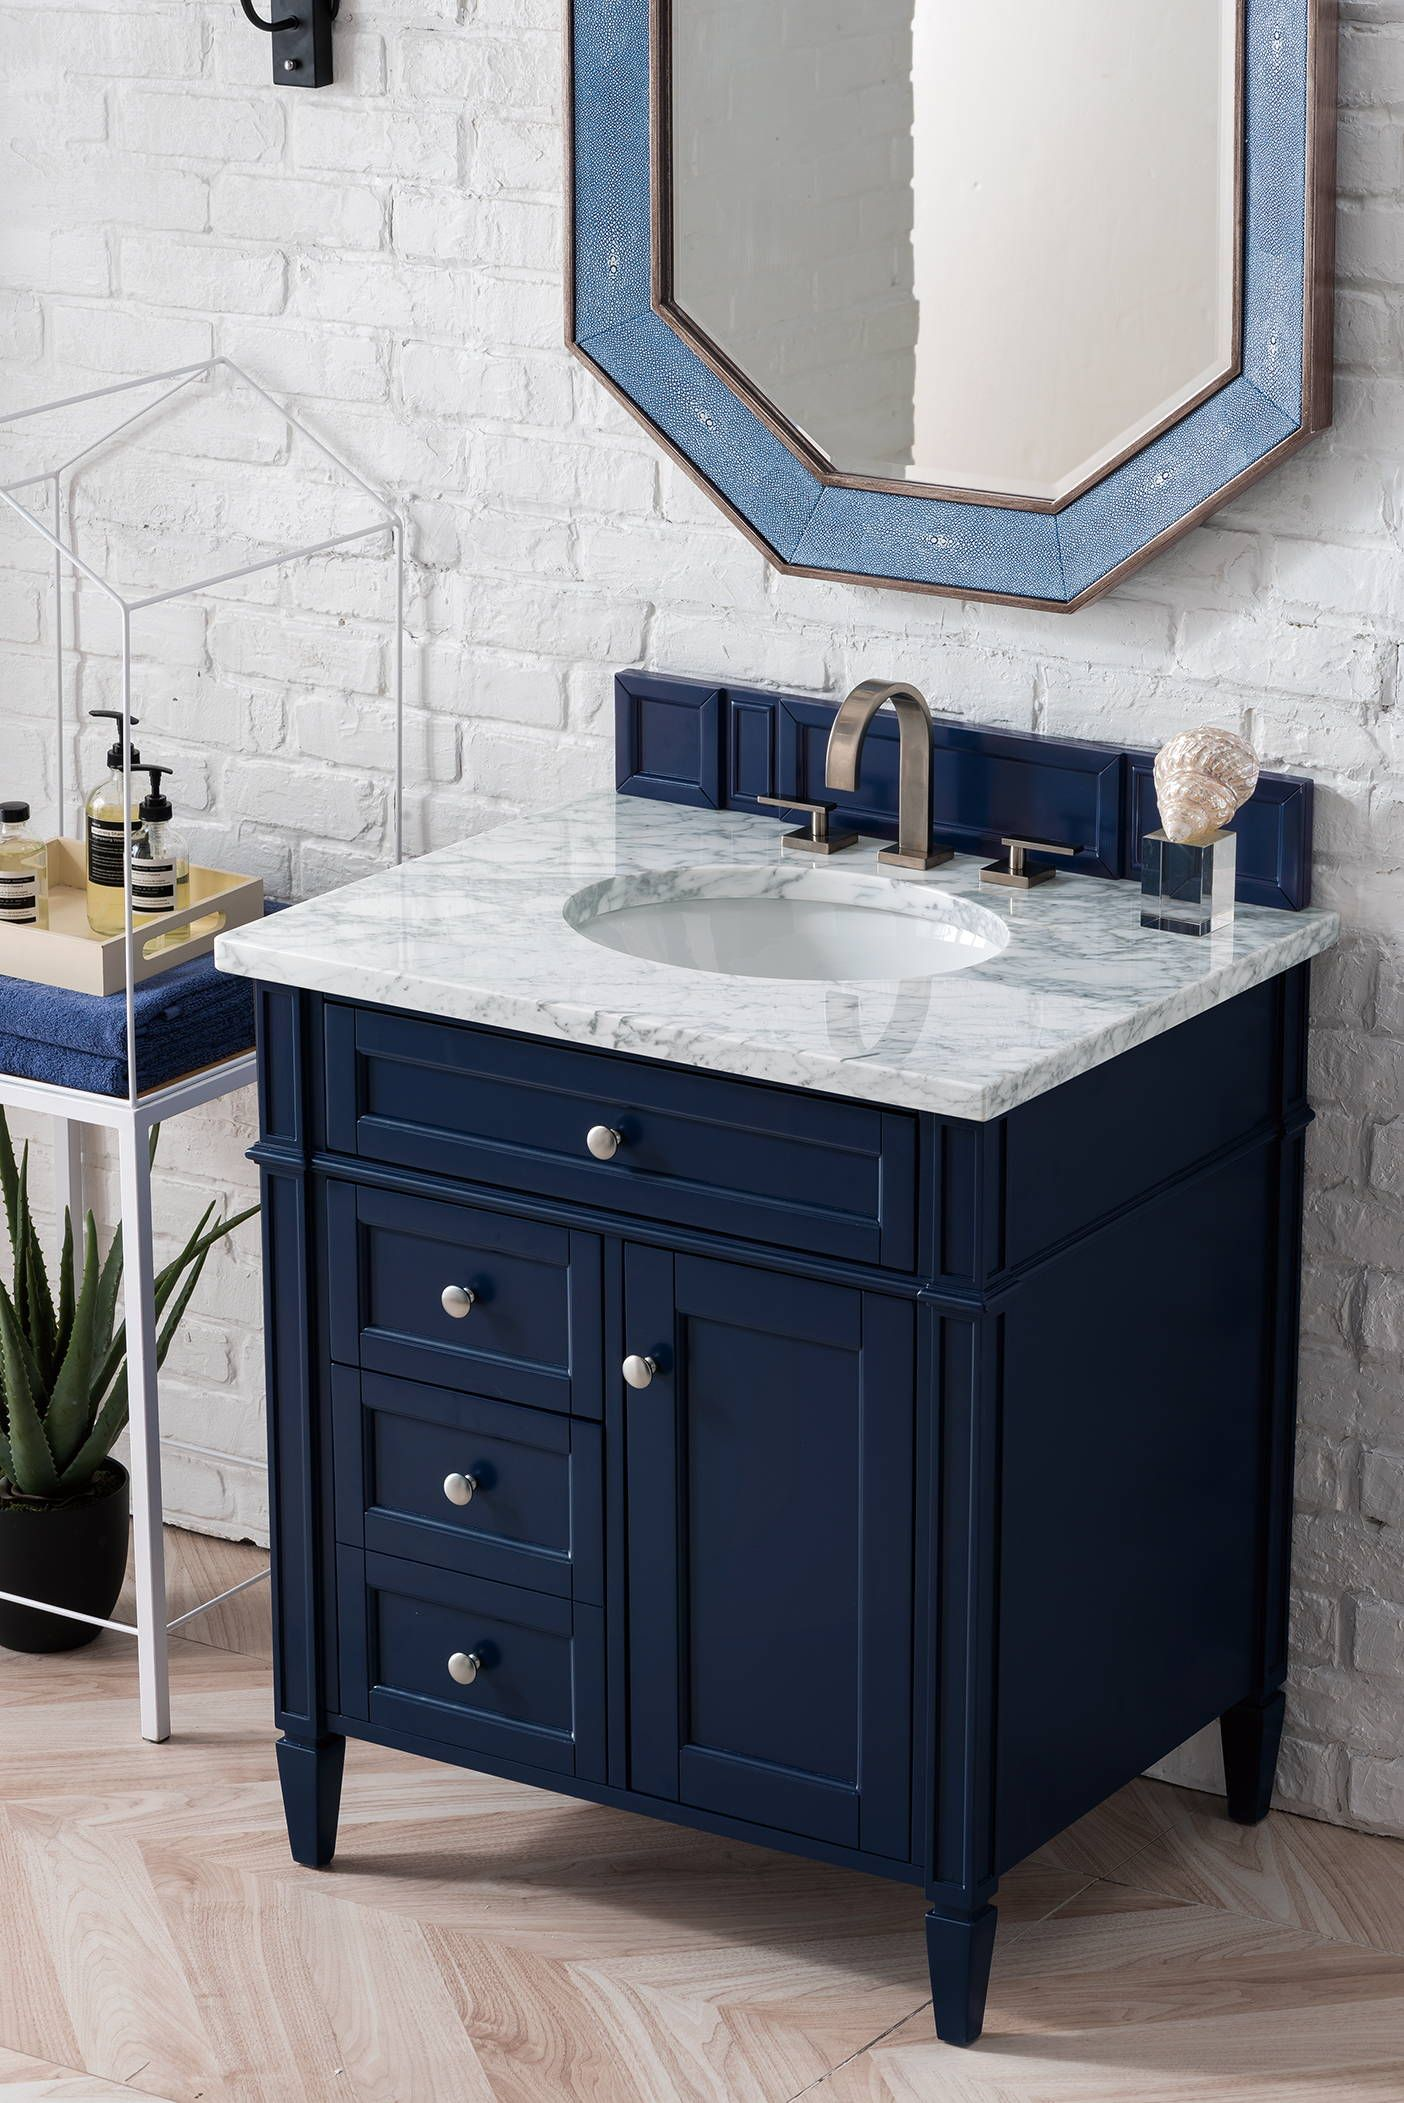 Brittany 30 single vanity victory blue in 2020 single